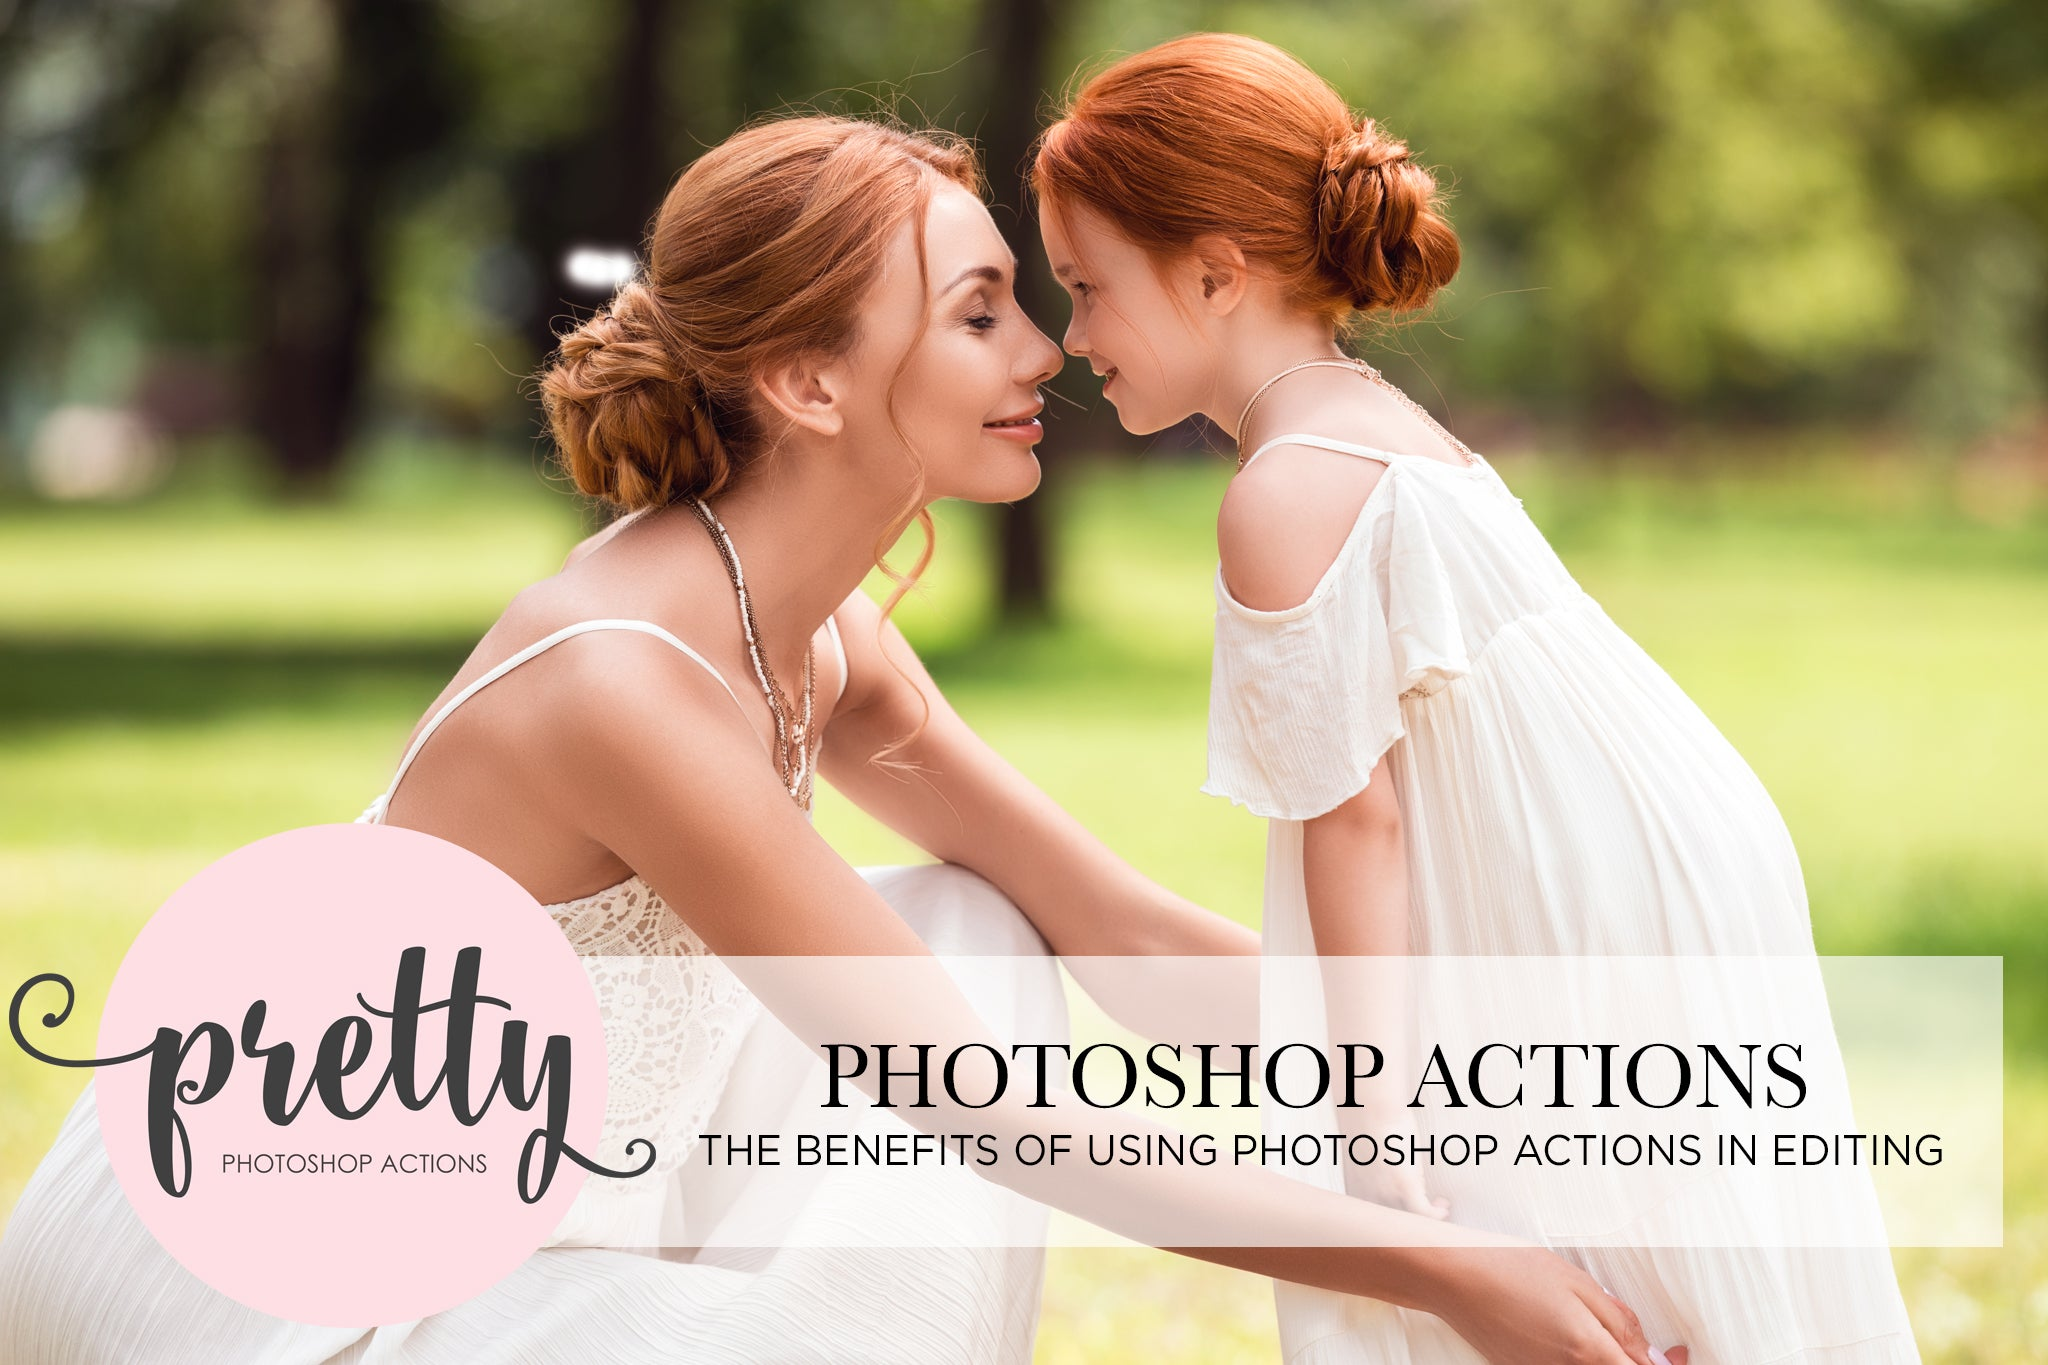 Benefits of Using Photoshop Actions - Pretty Photoshop Actions Tutorial